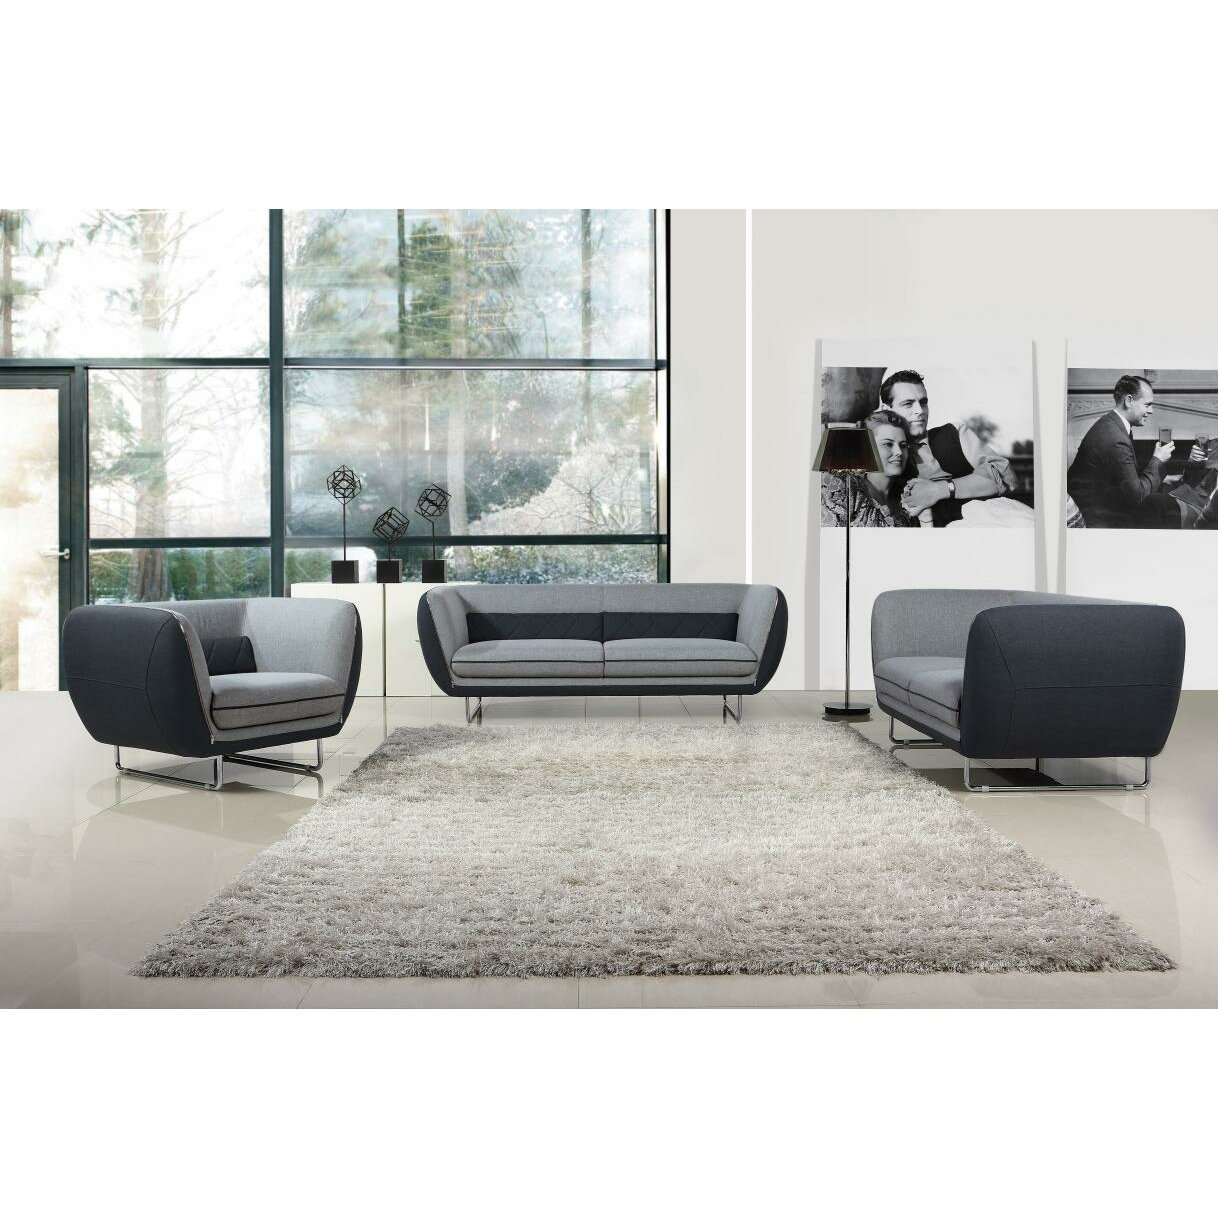 Vig furniture divani casa vietta modern living room set for Contemporary living room sets